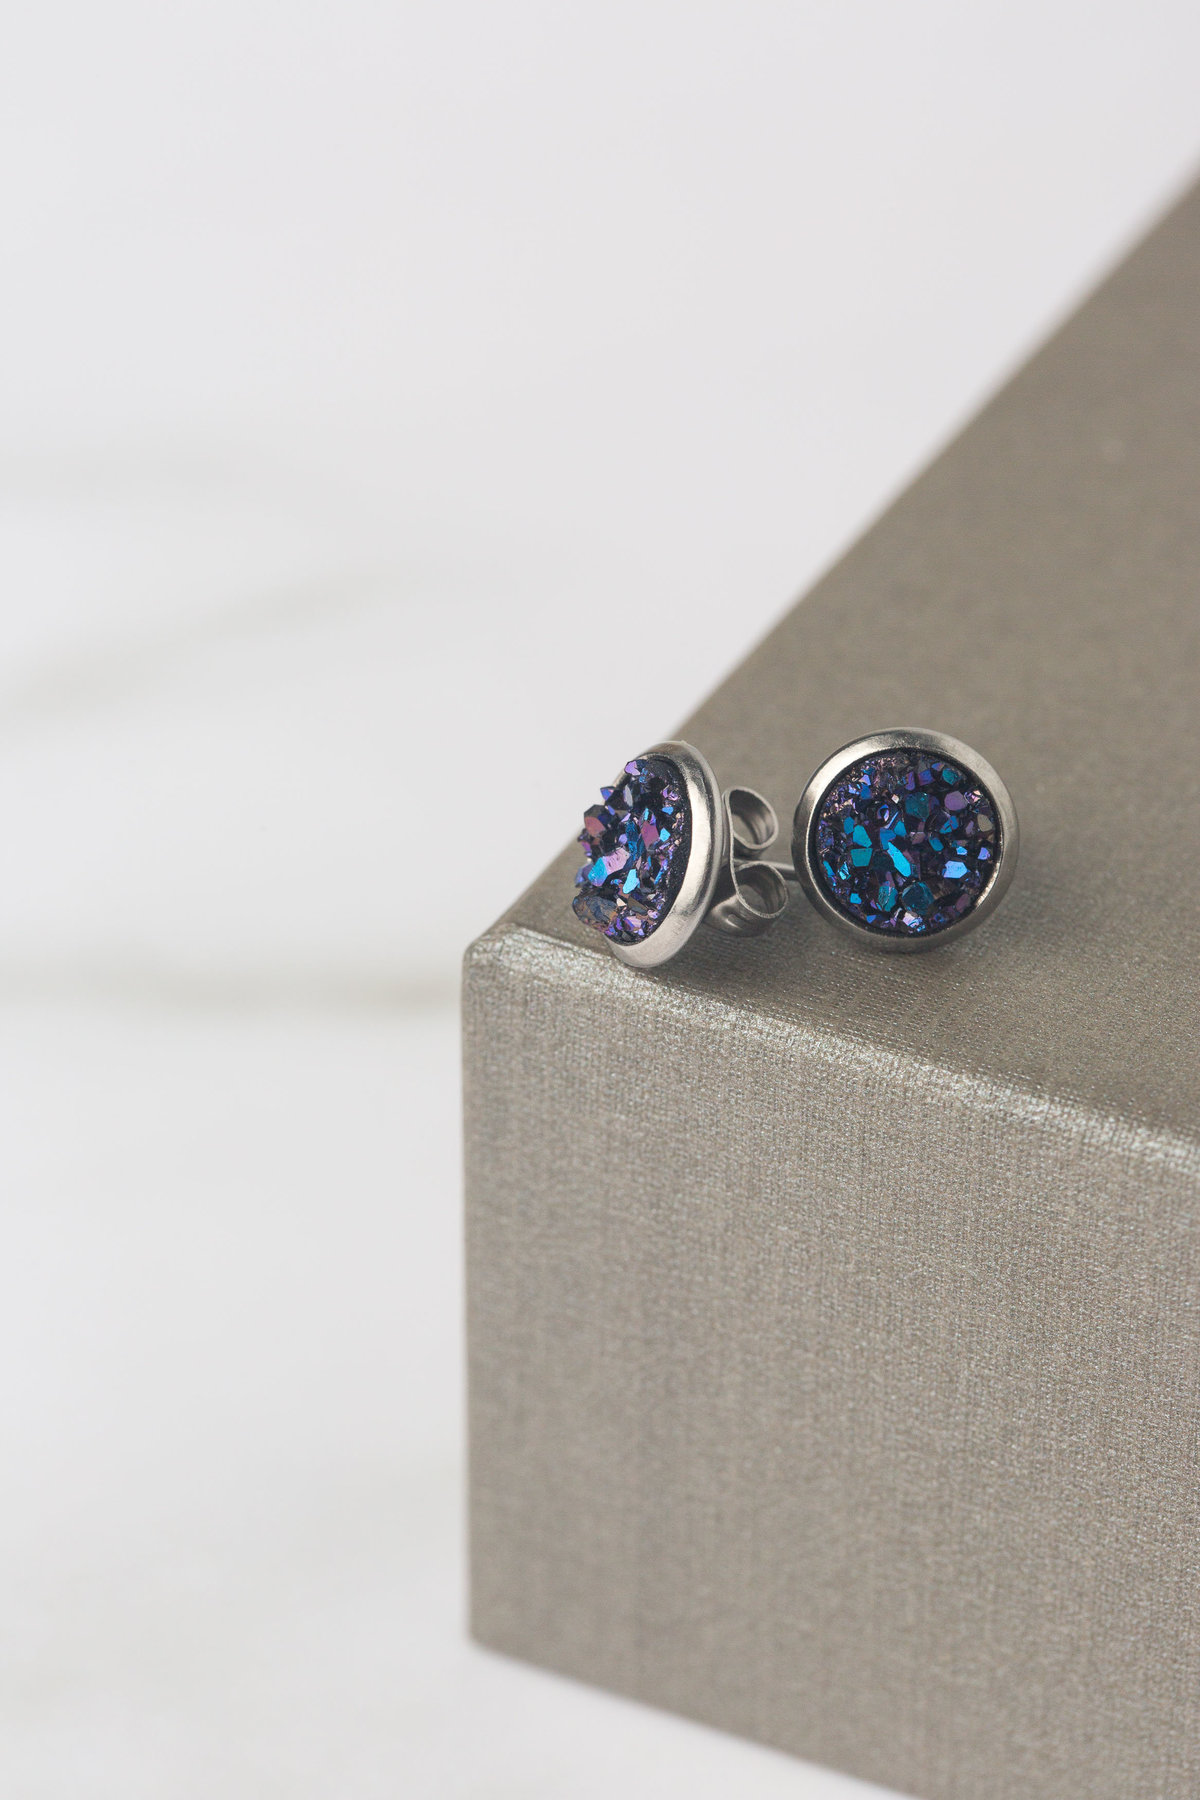 Atelier21 Co - Druzy Earrings-9